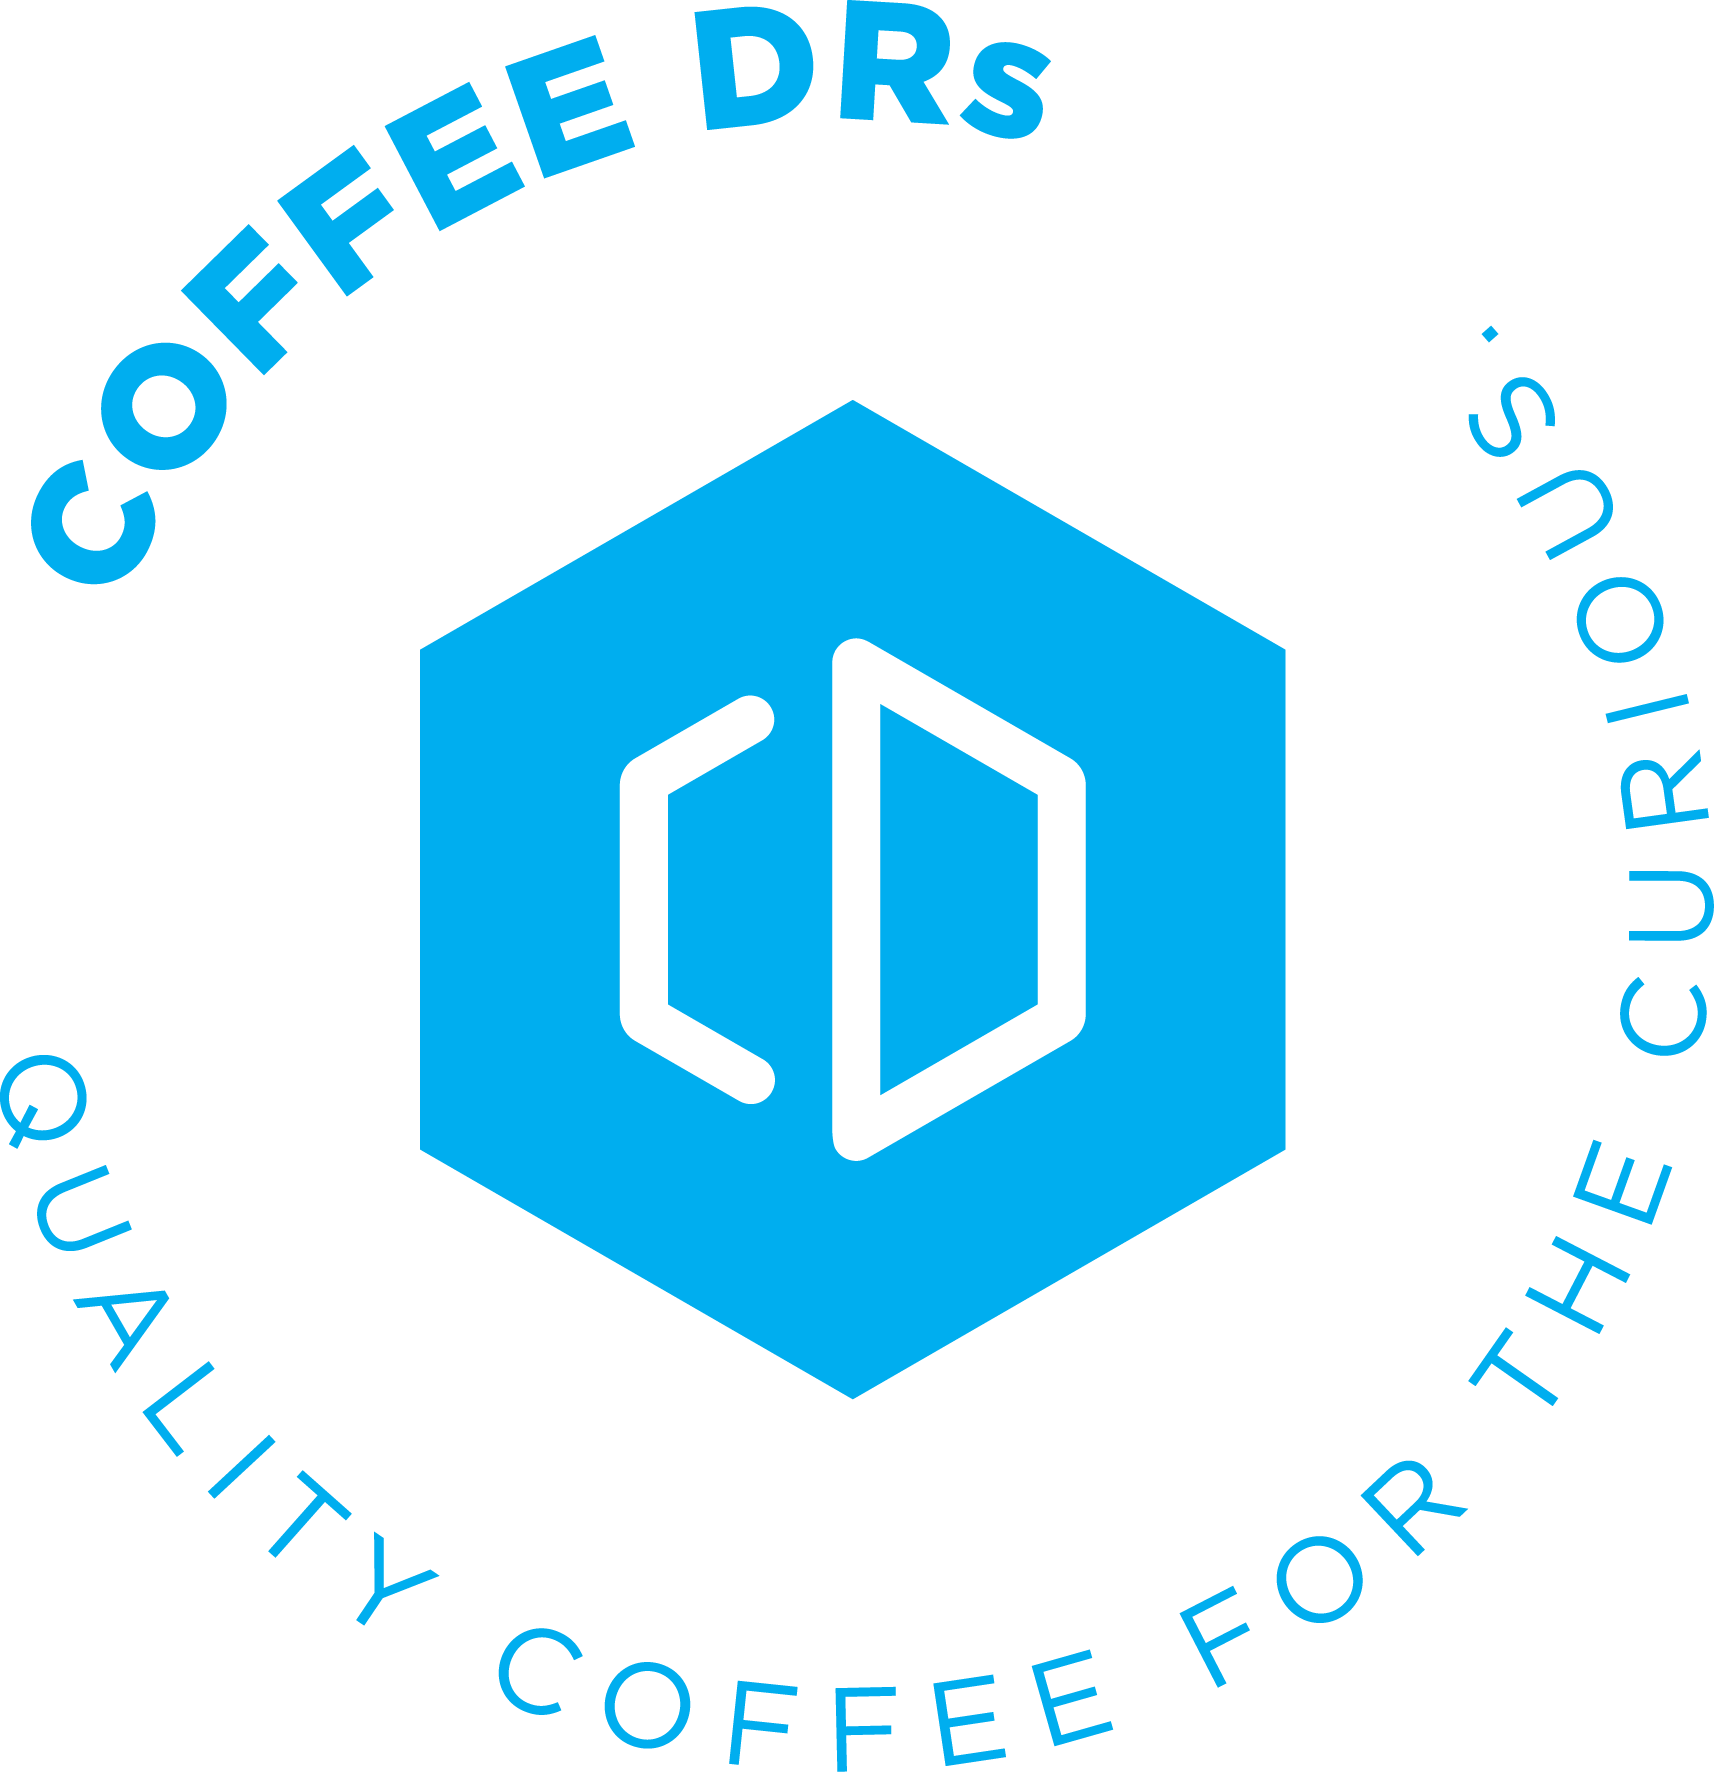 Coffee DRs Logo.png